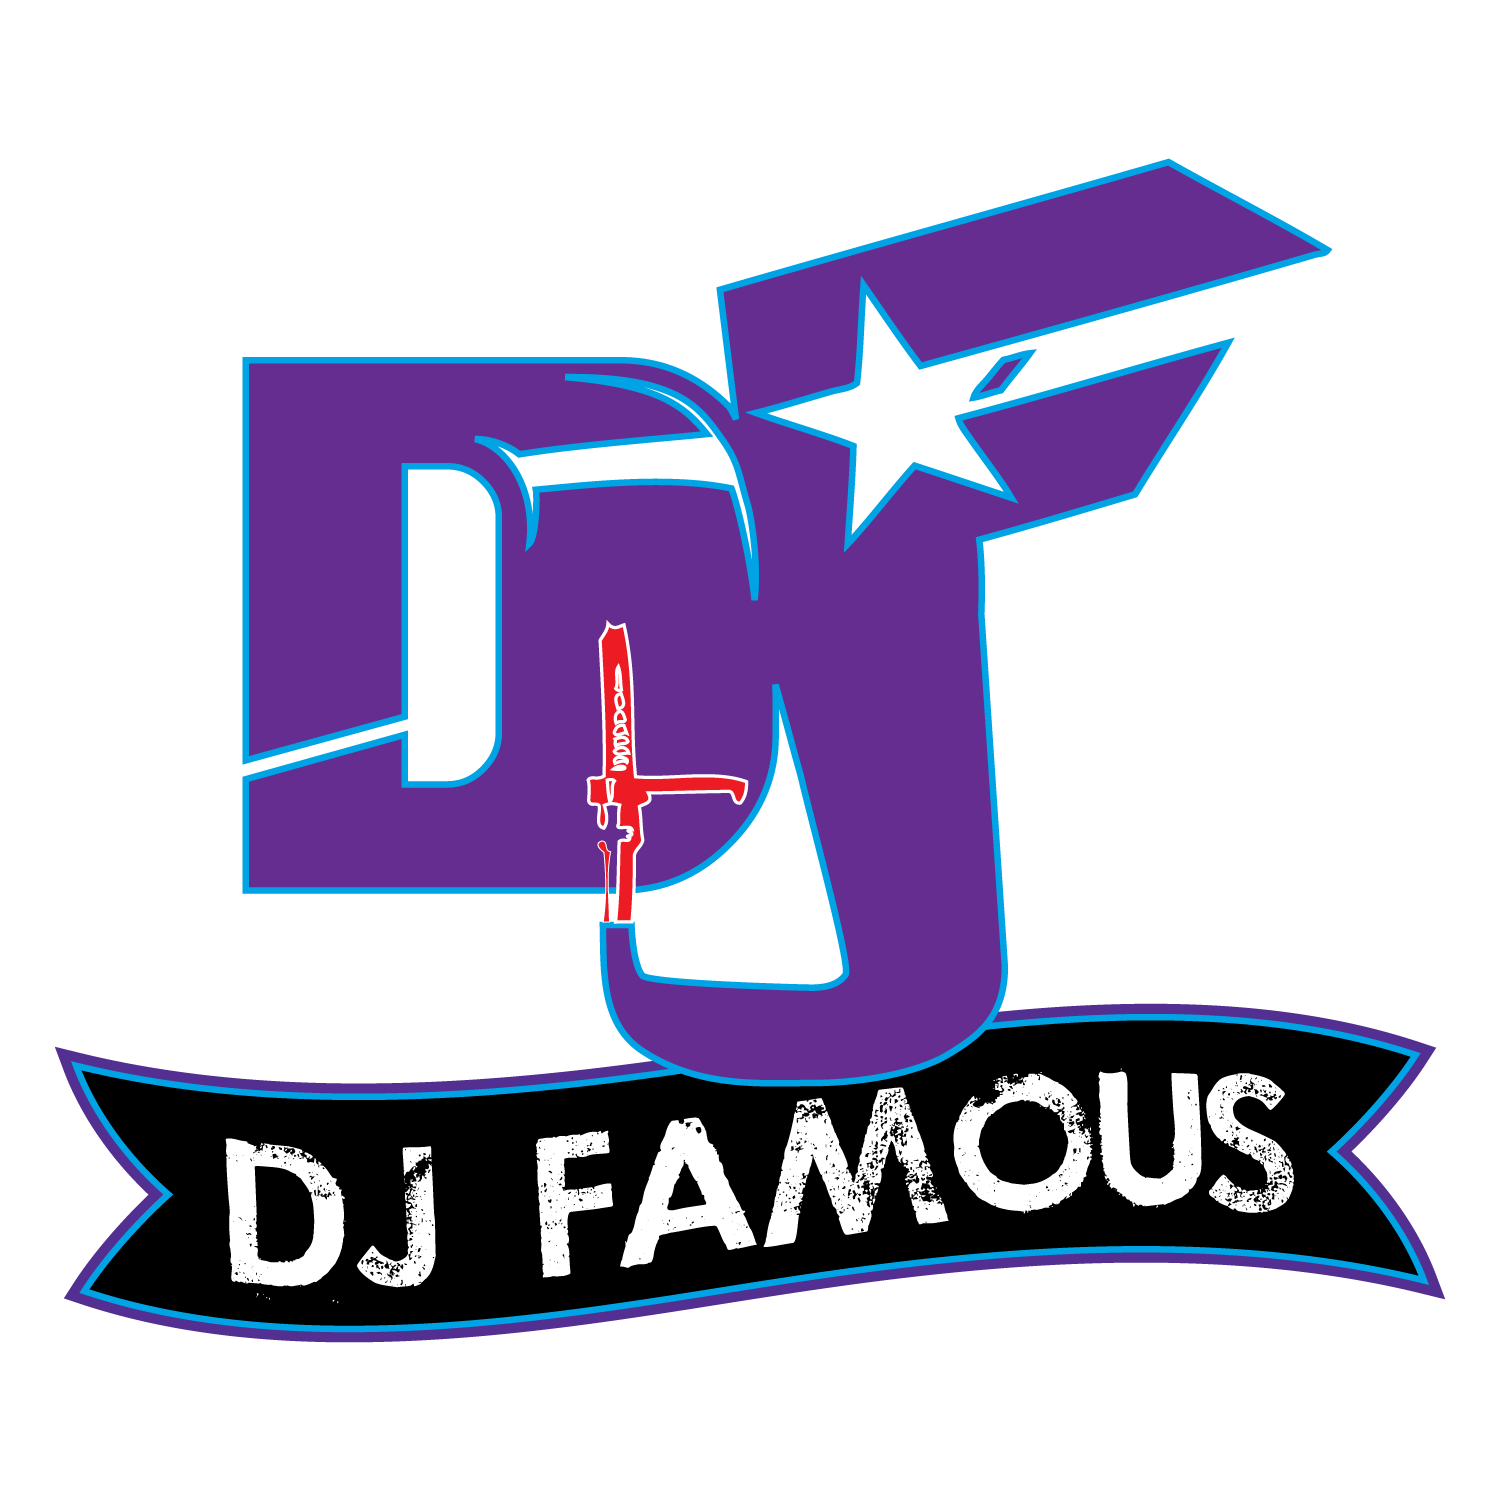 Dj music logo png. New design for famous